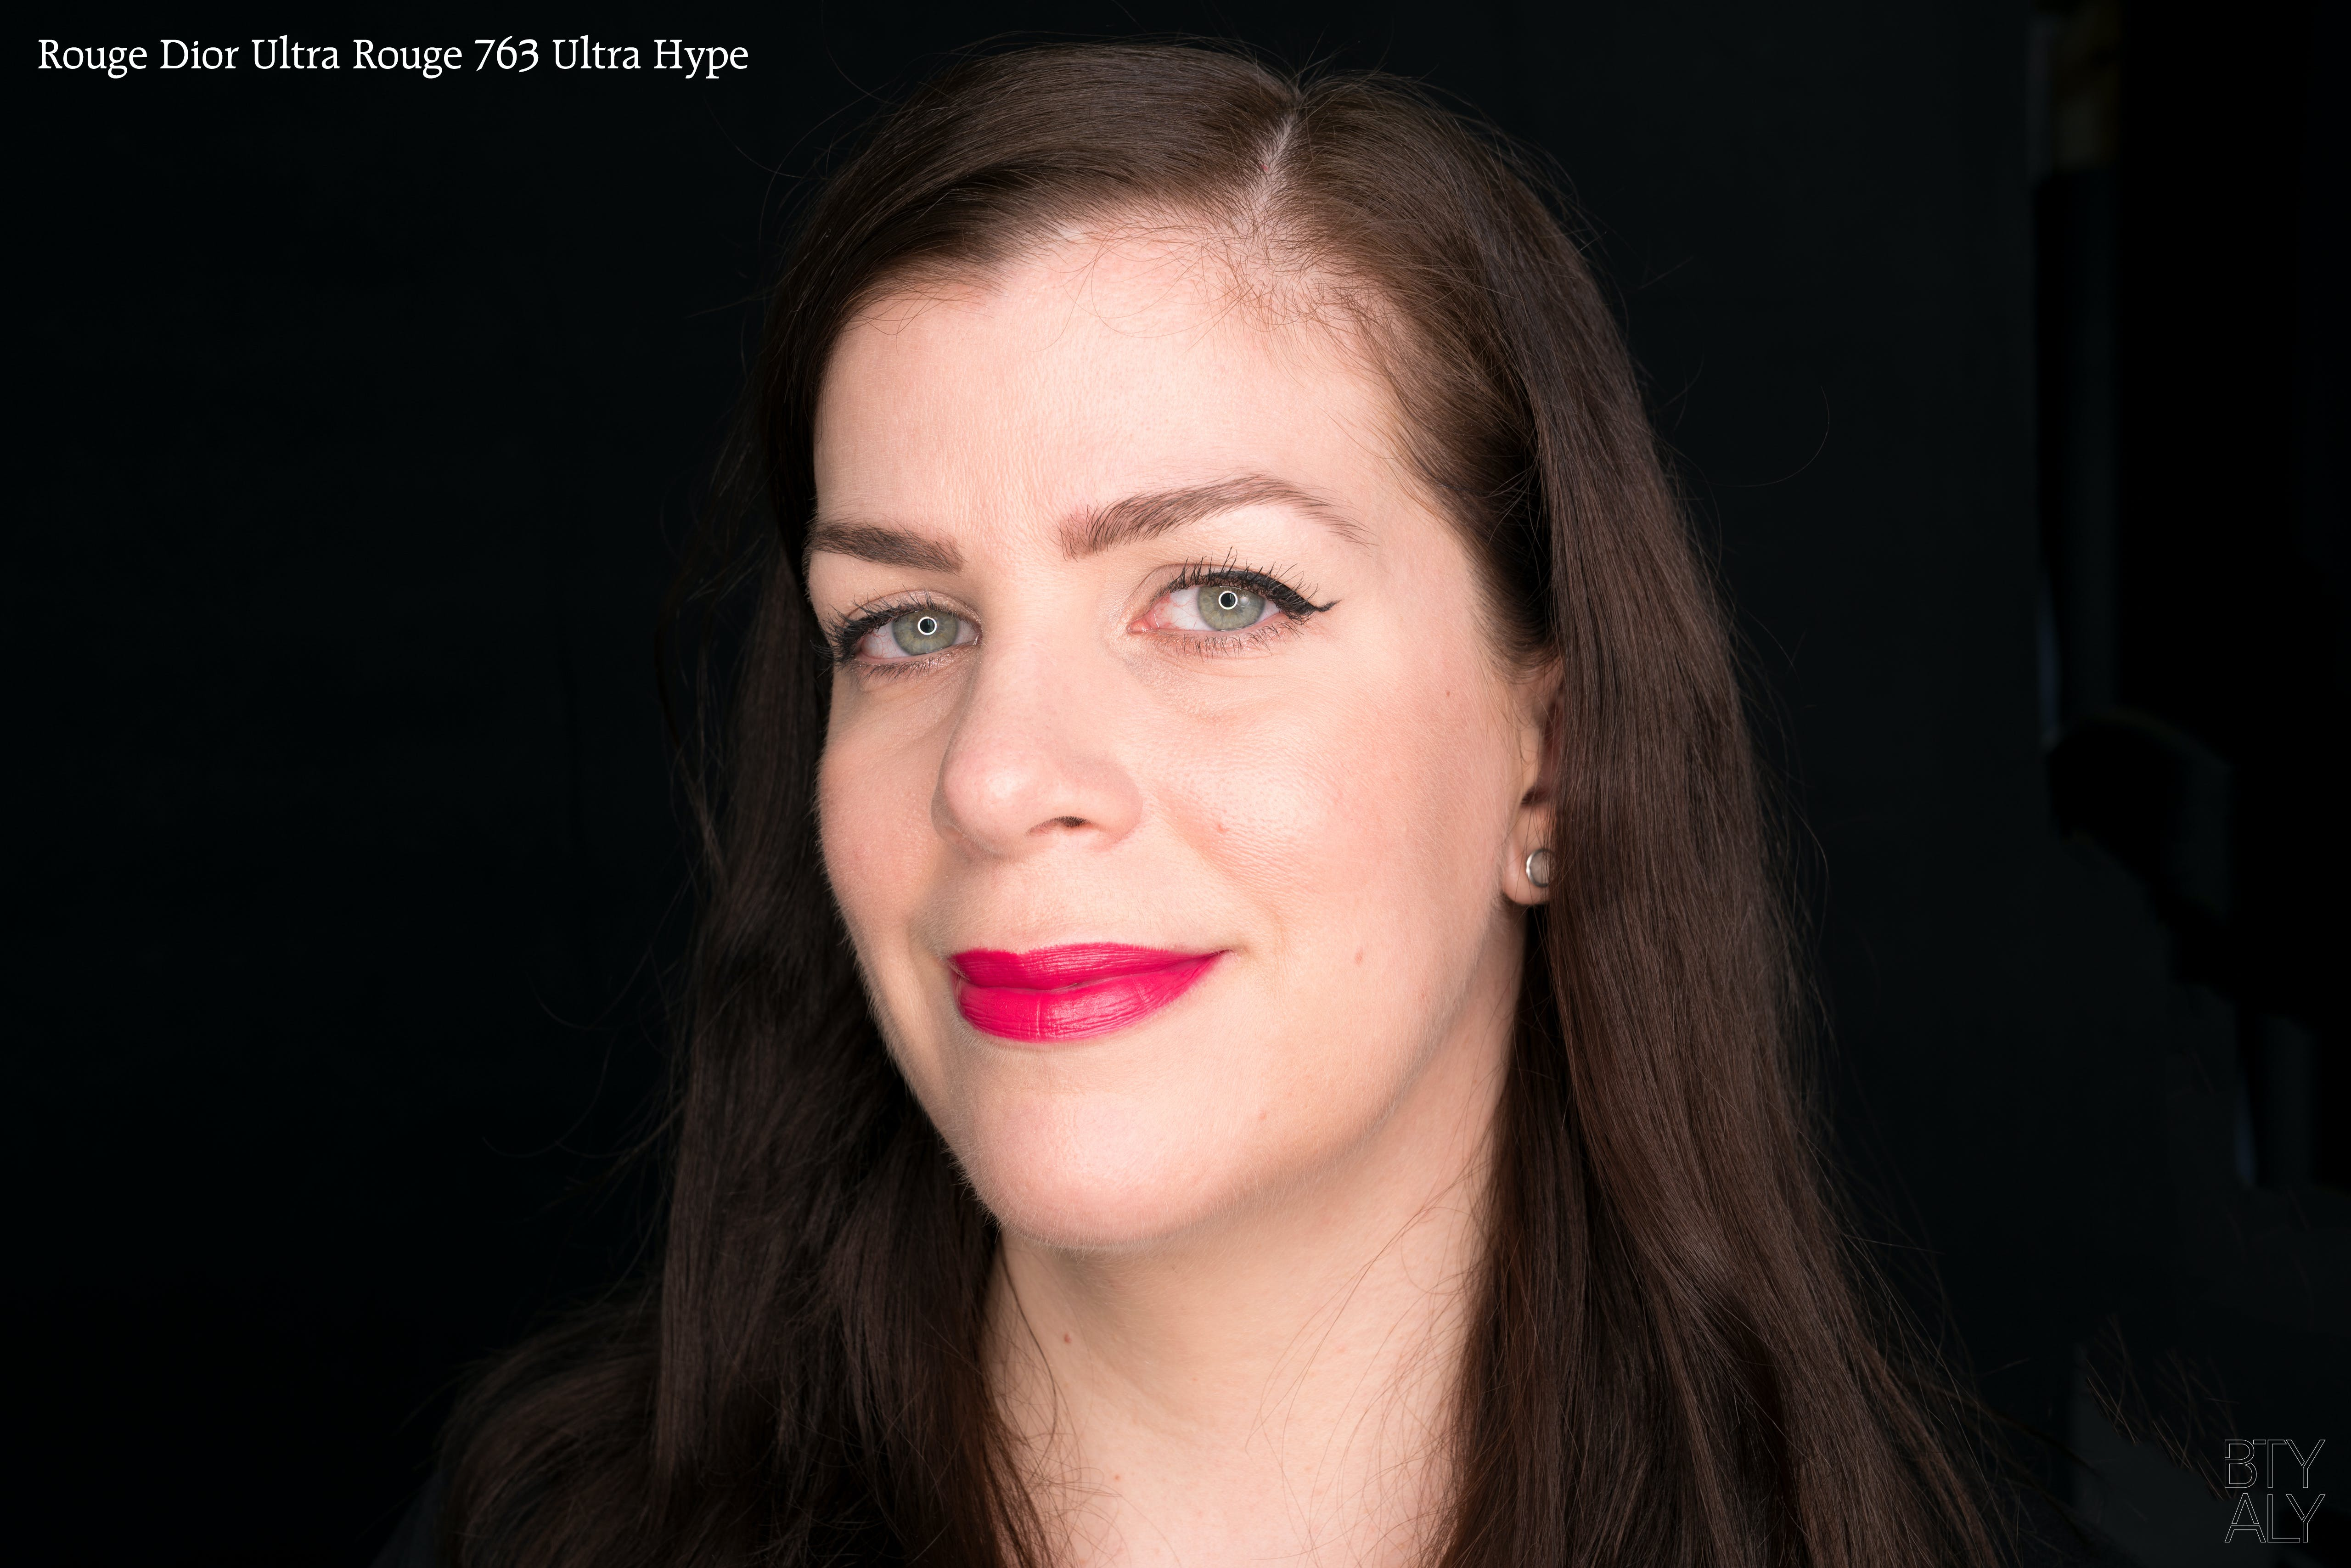 Rouge Dior Ultra Rouge Lipsticks 763 swatch